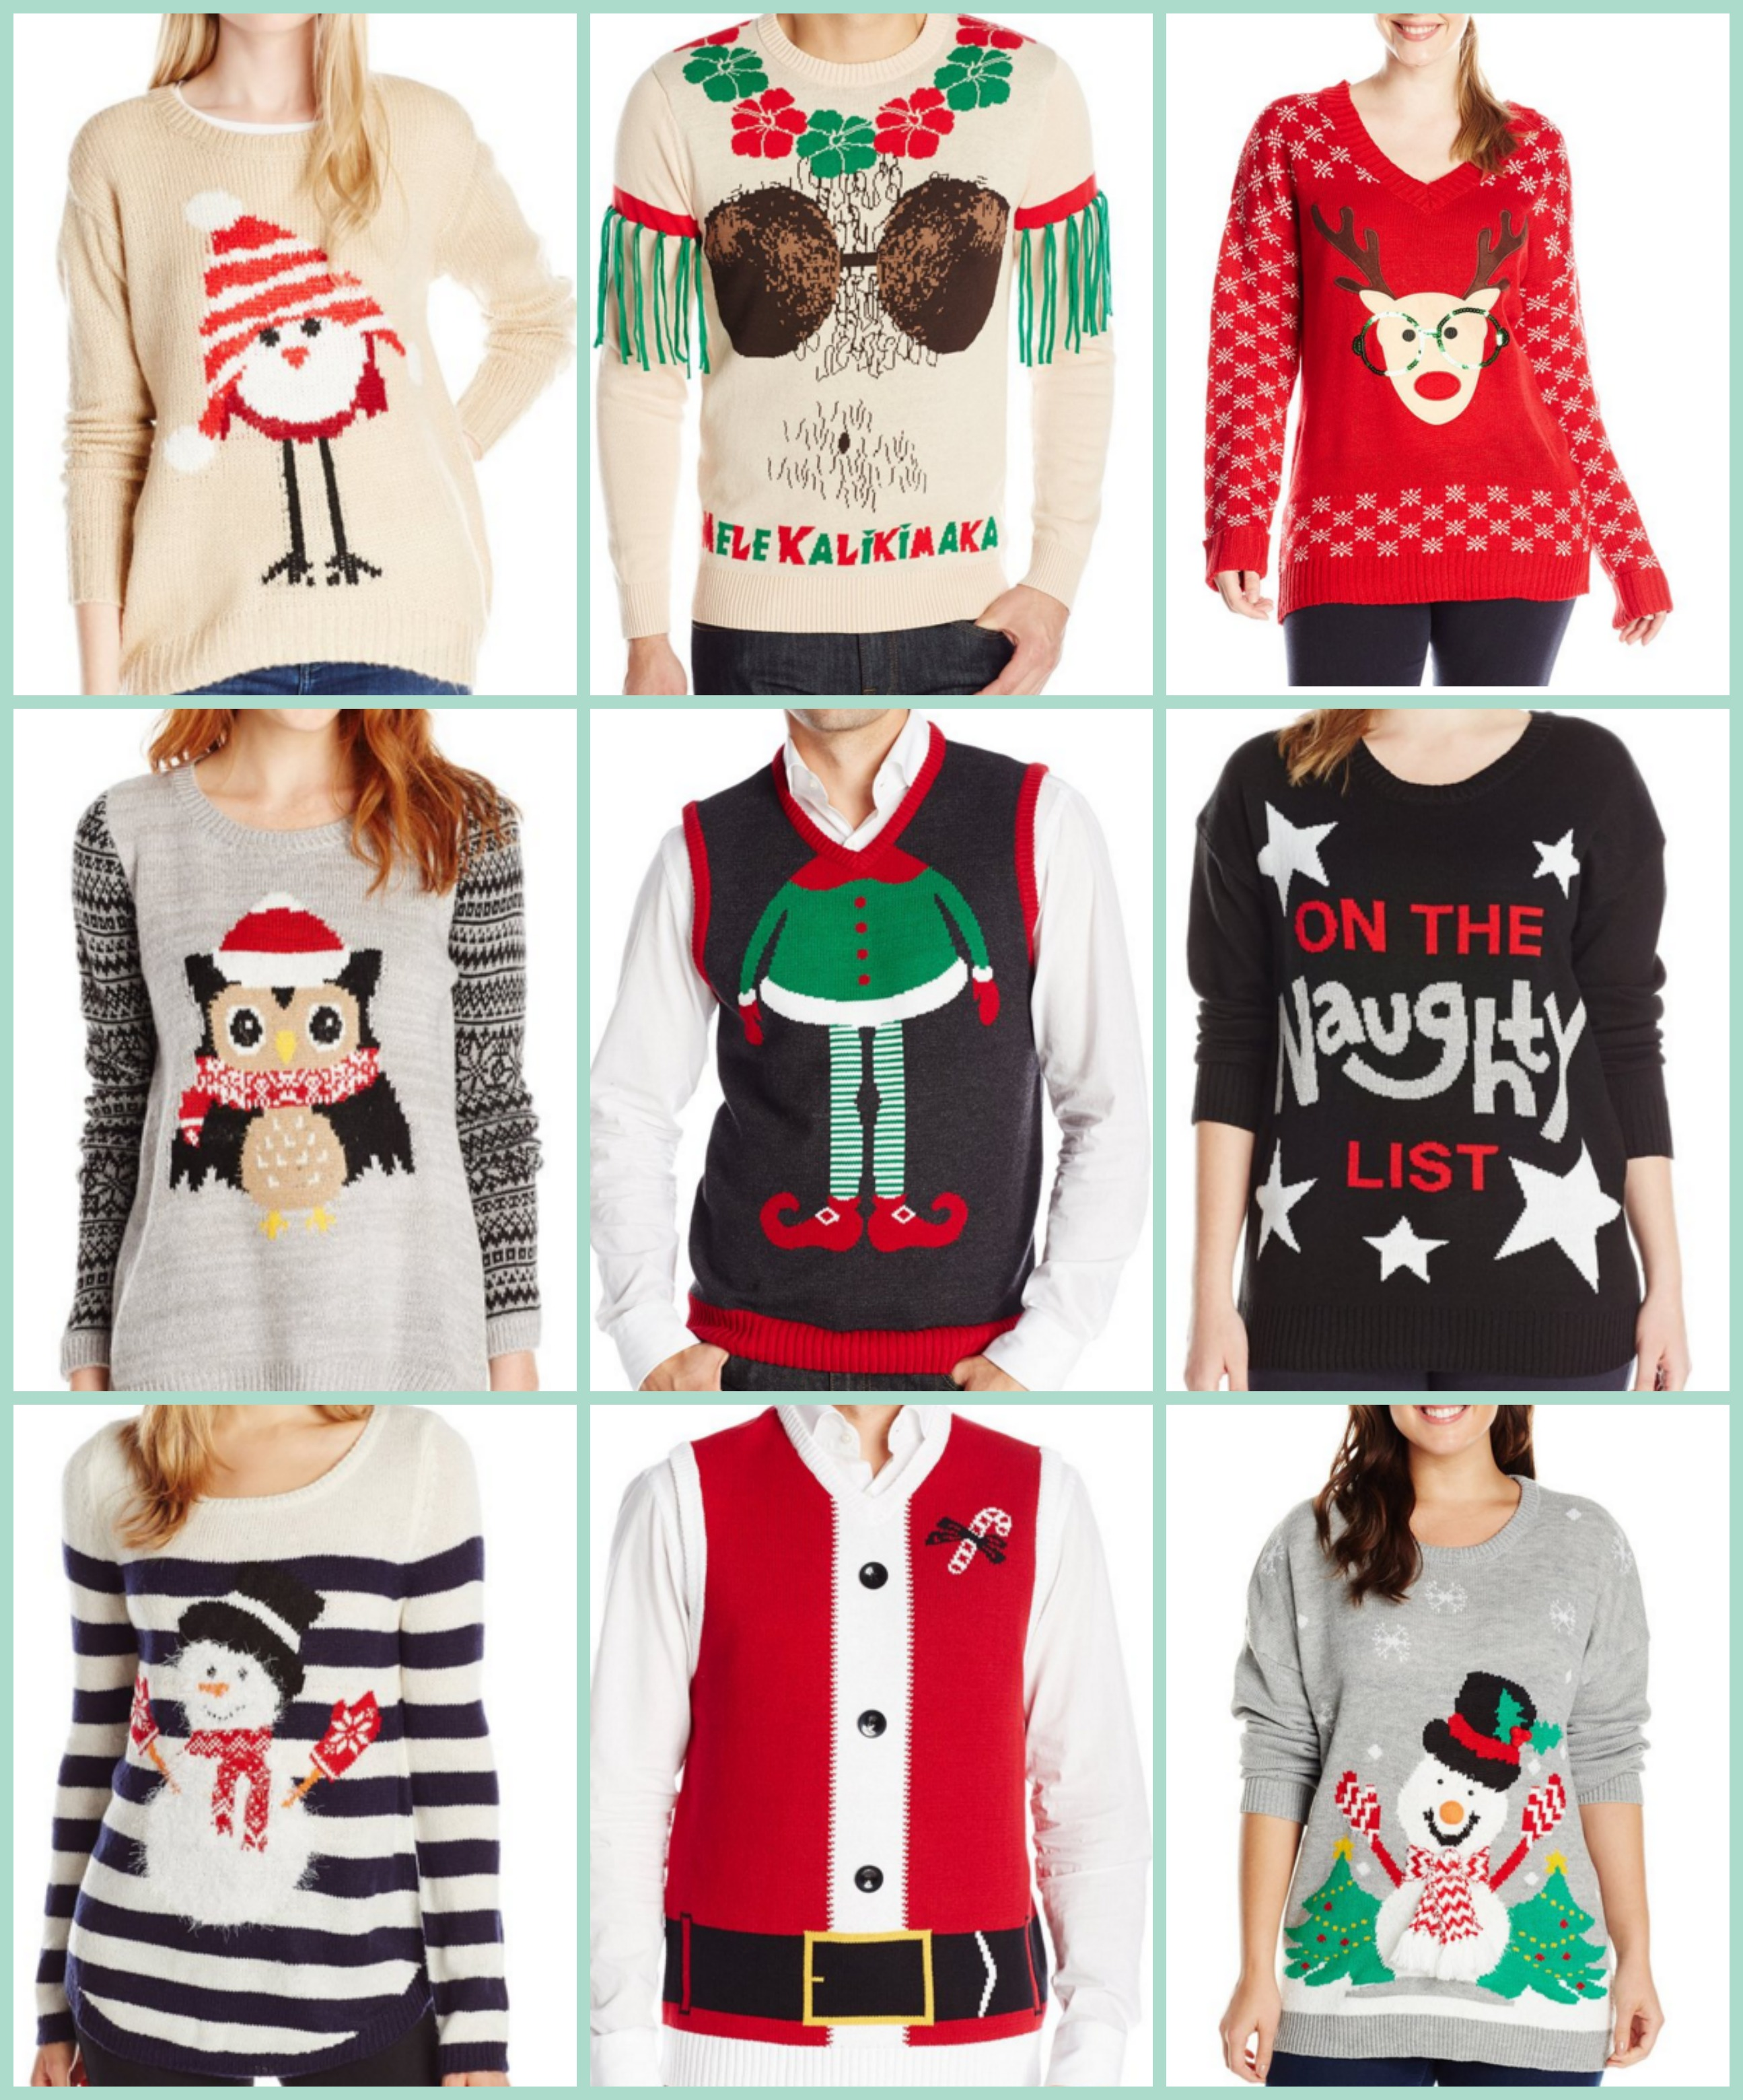 Walmart Christmas Sweater Plus Size Anlis